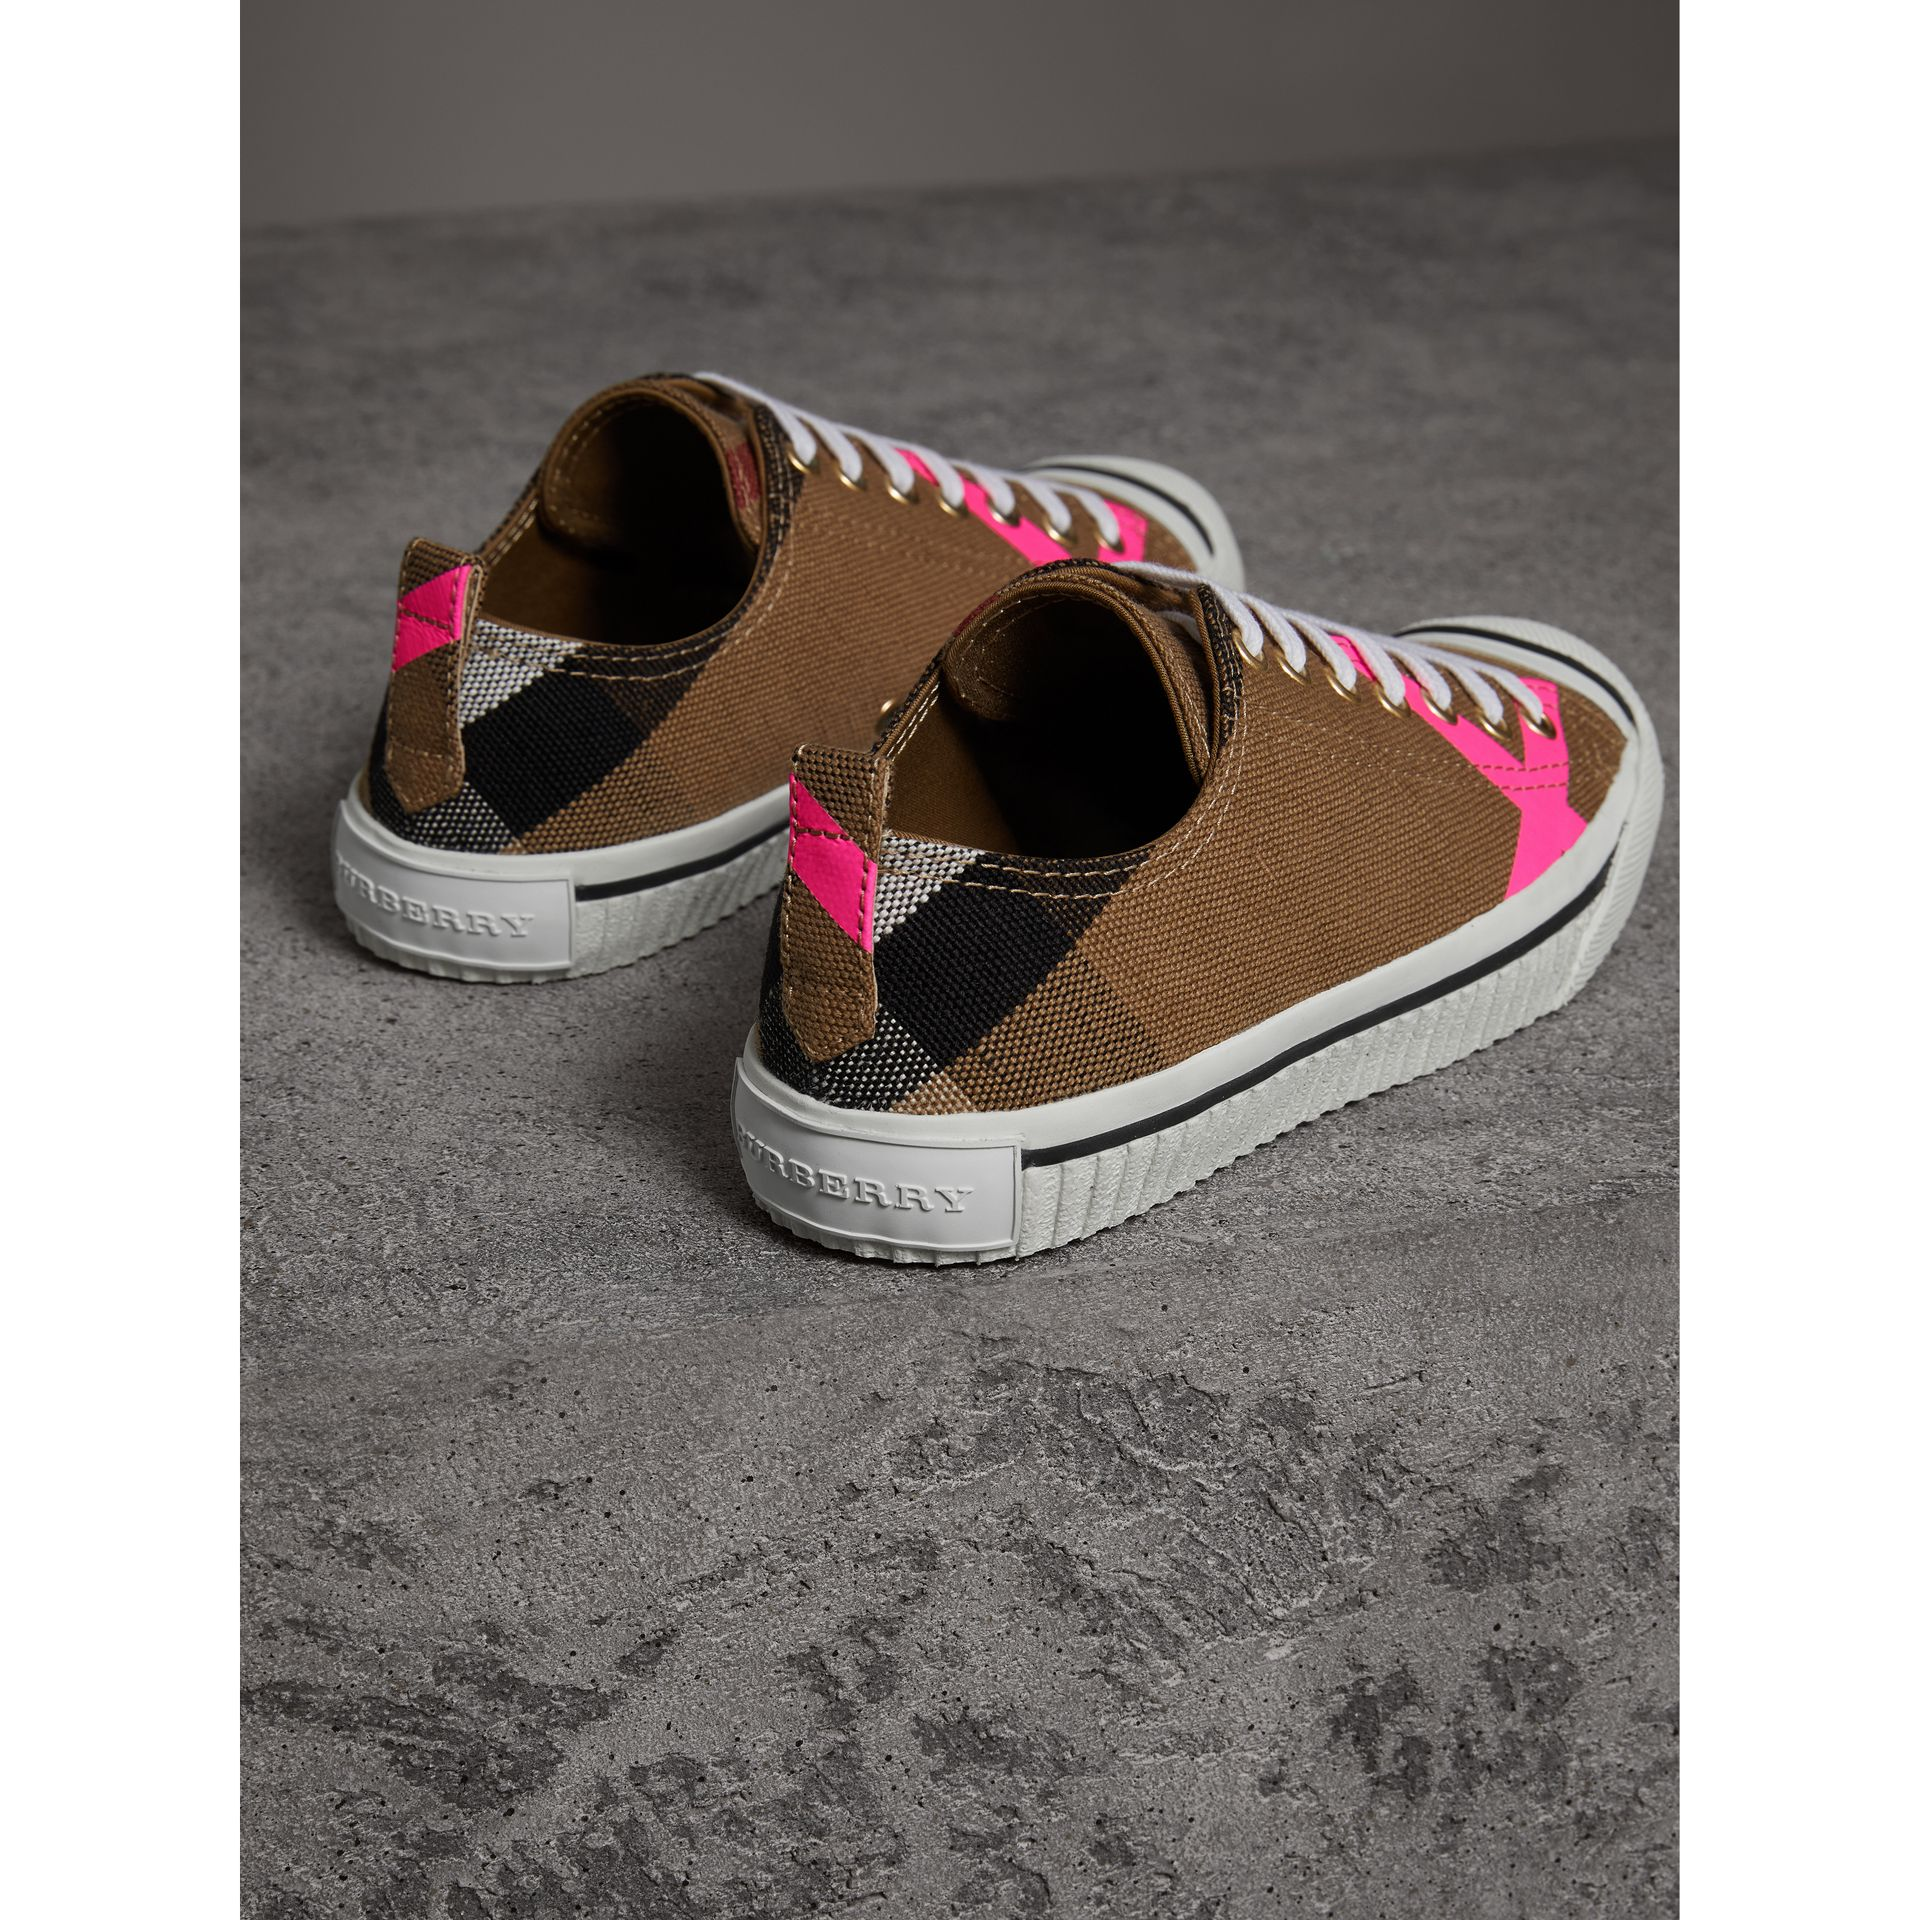 Canvas Check and Leather Sneakers in Classic/neon Pink - Women | Burberry Singapore - gallery image 3